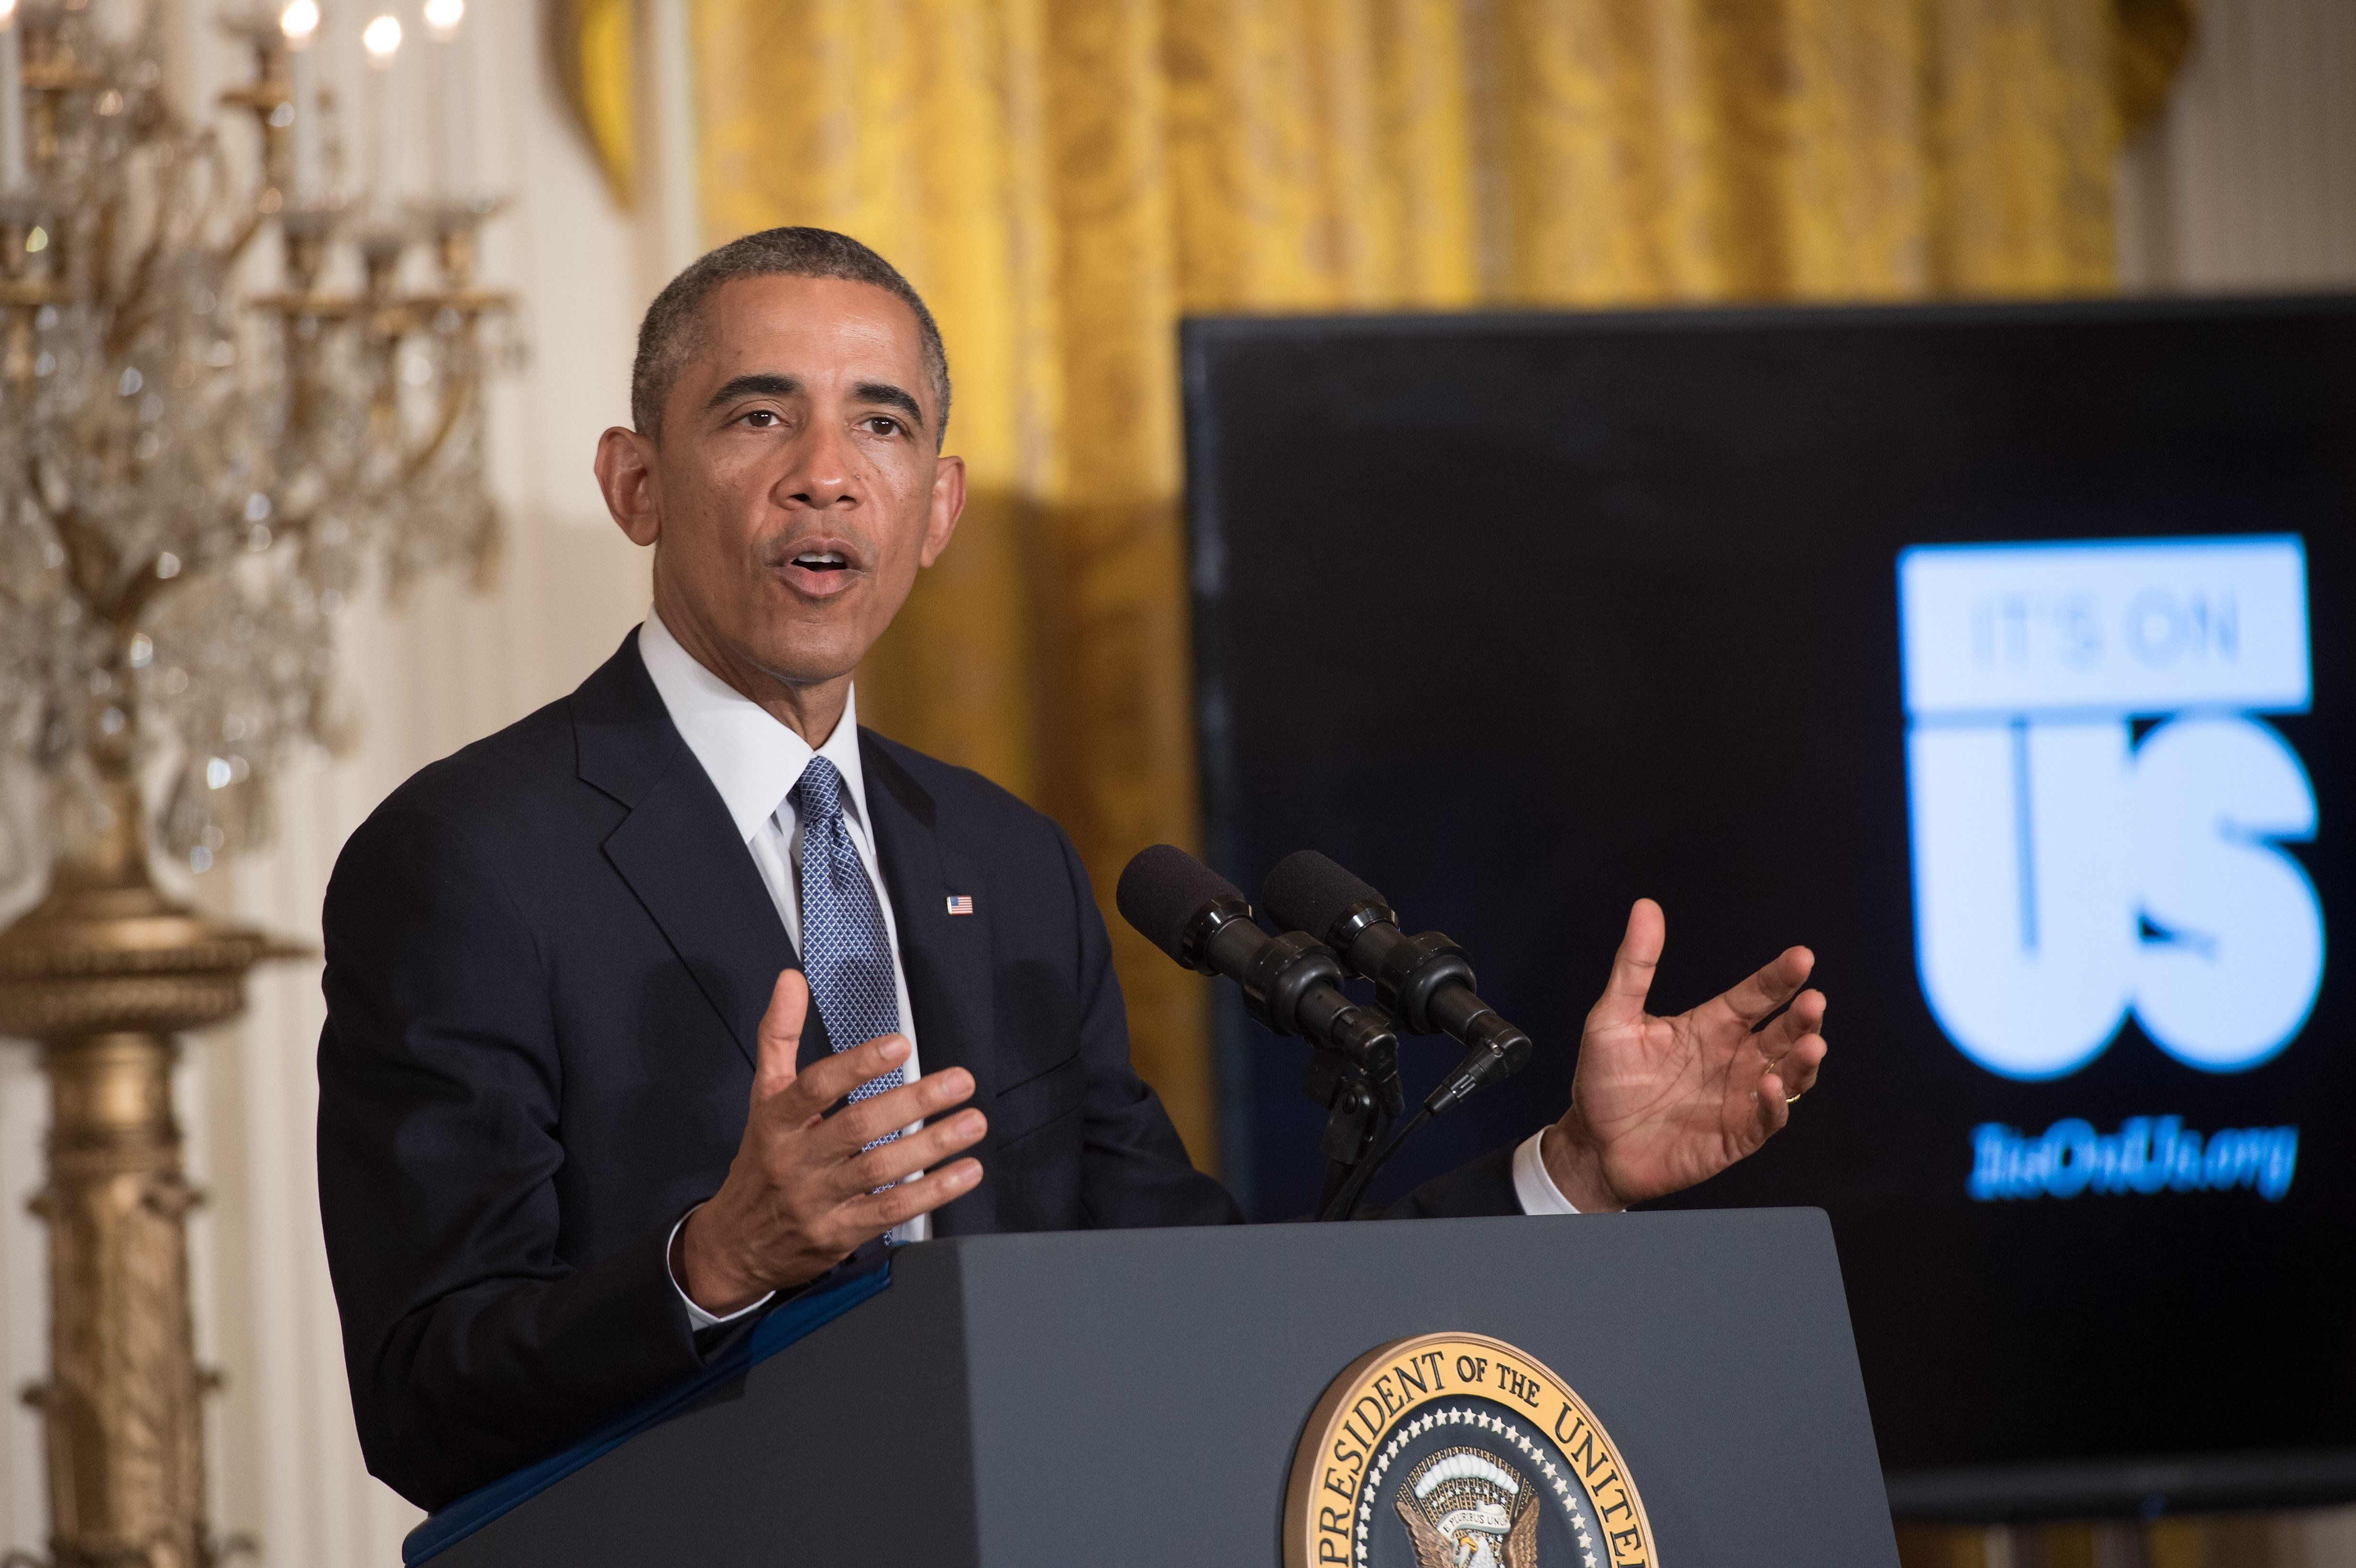 US President Barack Obama speaks at the launch of the 'It's On Us' campaign to prevent sexual assault on college campuses at the White House in Washington on September 19, 2014.   AFP PHOTO/Nicholas KAMM        (Photo credit should read NICHOLAS KAMM/AFP/Getty Images)